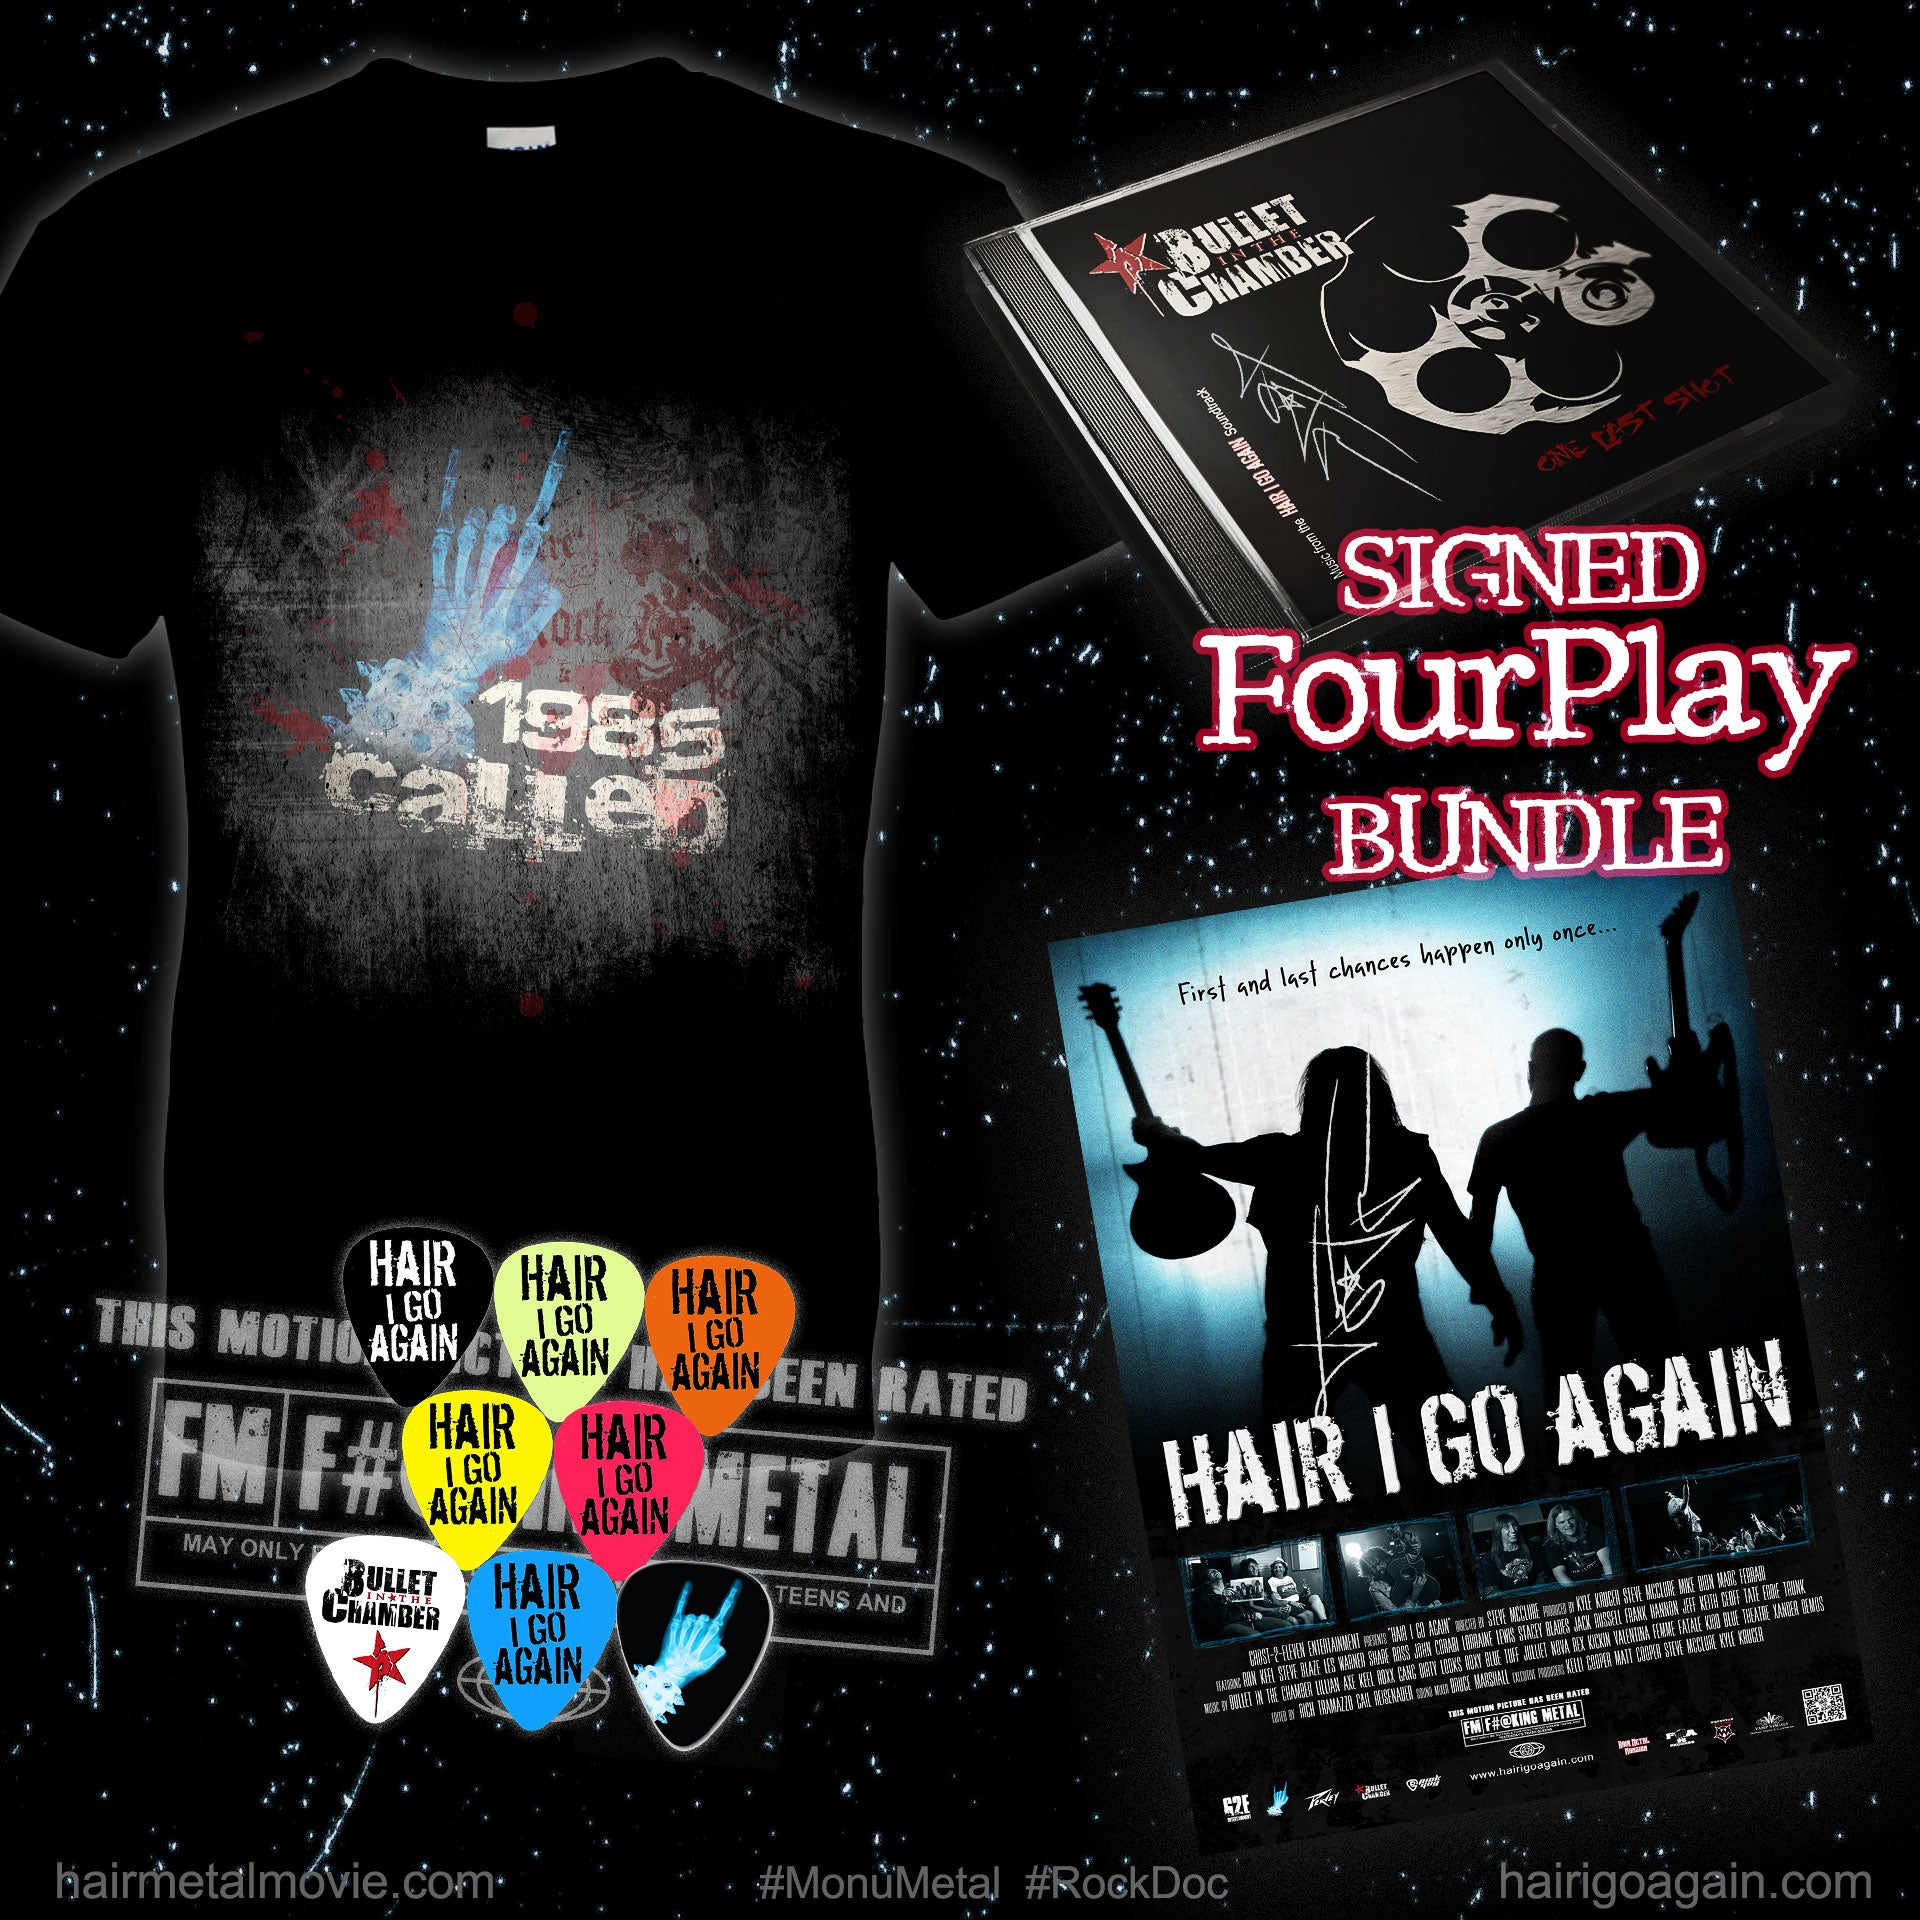 Hair I Go Again | #FourPlay Bundle